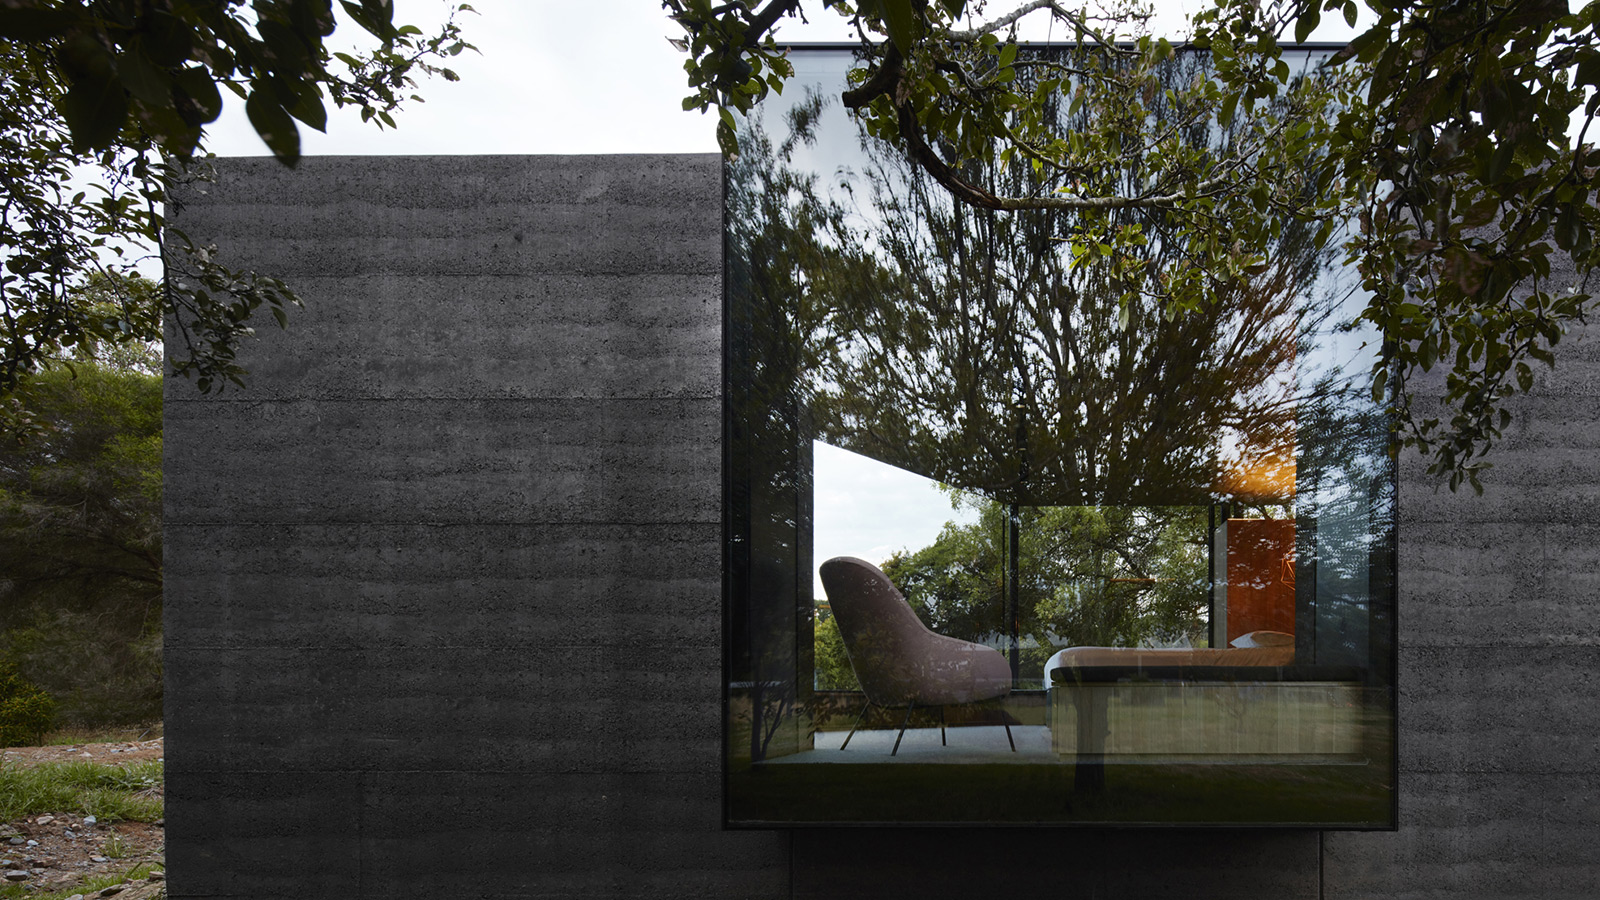 Pavilion Between Trees by Branch Studio Architects